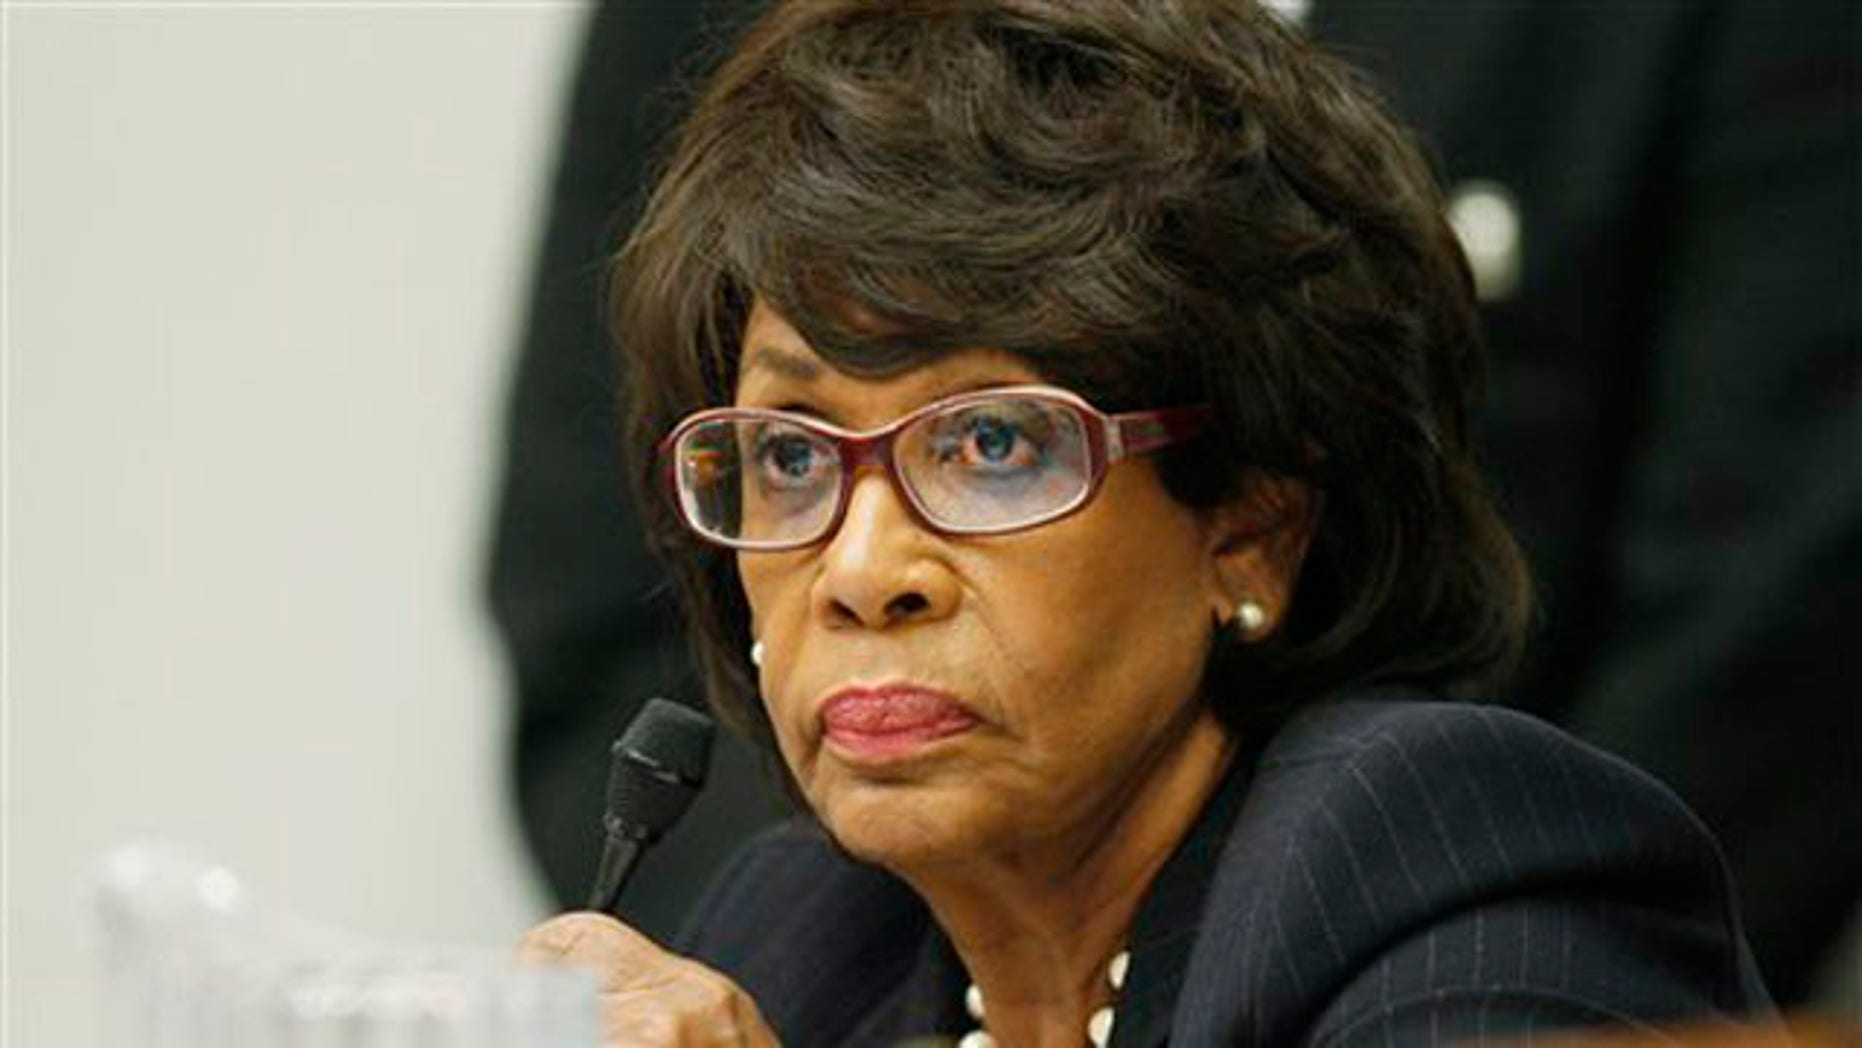 Oct. 28, 2009: Rep. Maxine Waters, D-Calif., is seen on Capitol Hill in Washington. A House investigative panel has decided to charge Rep. Maxine Waters of California with ethics violations, raising the possibility of a second trial this fall.